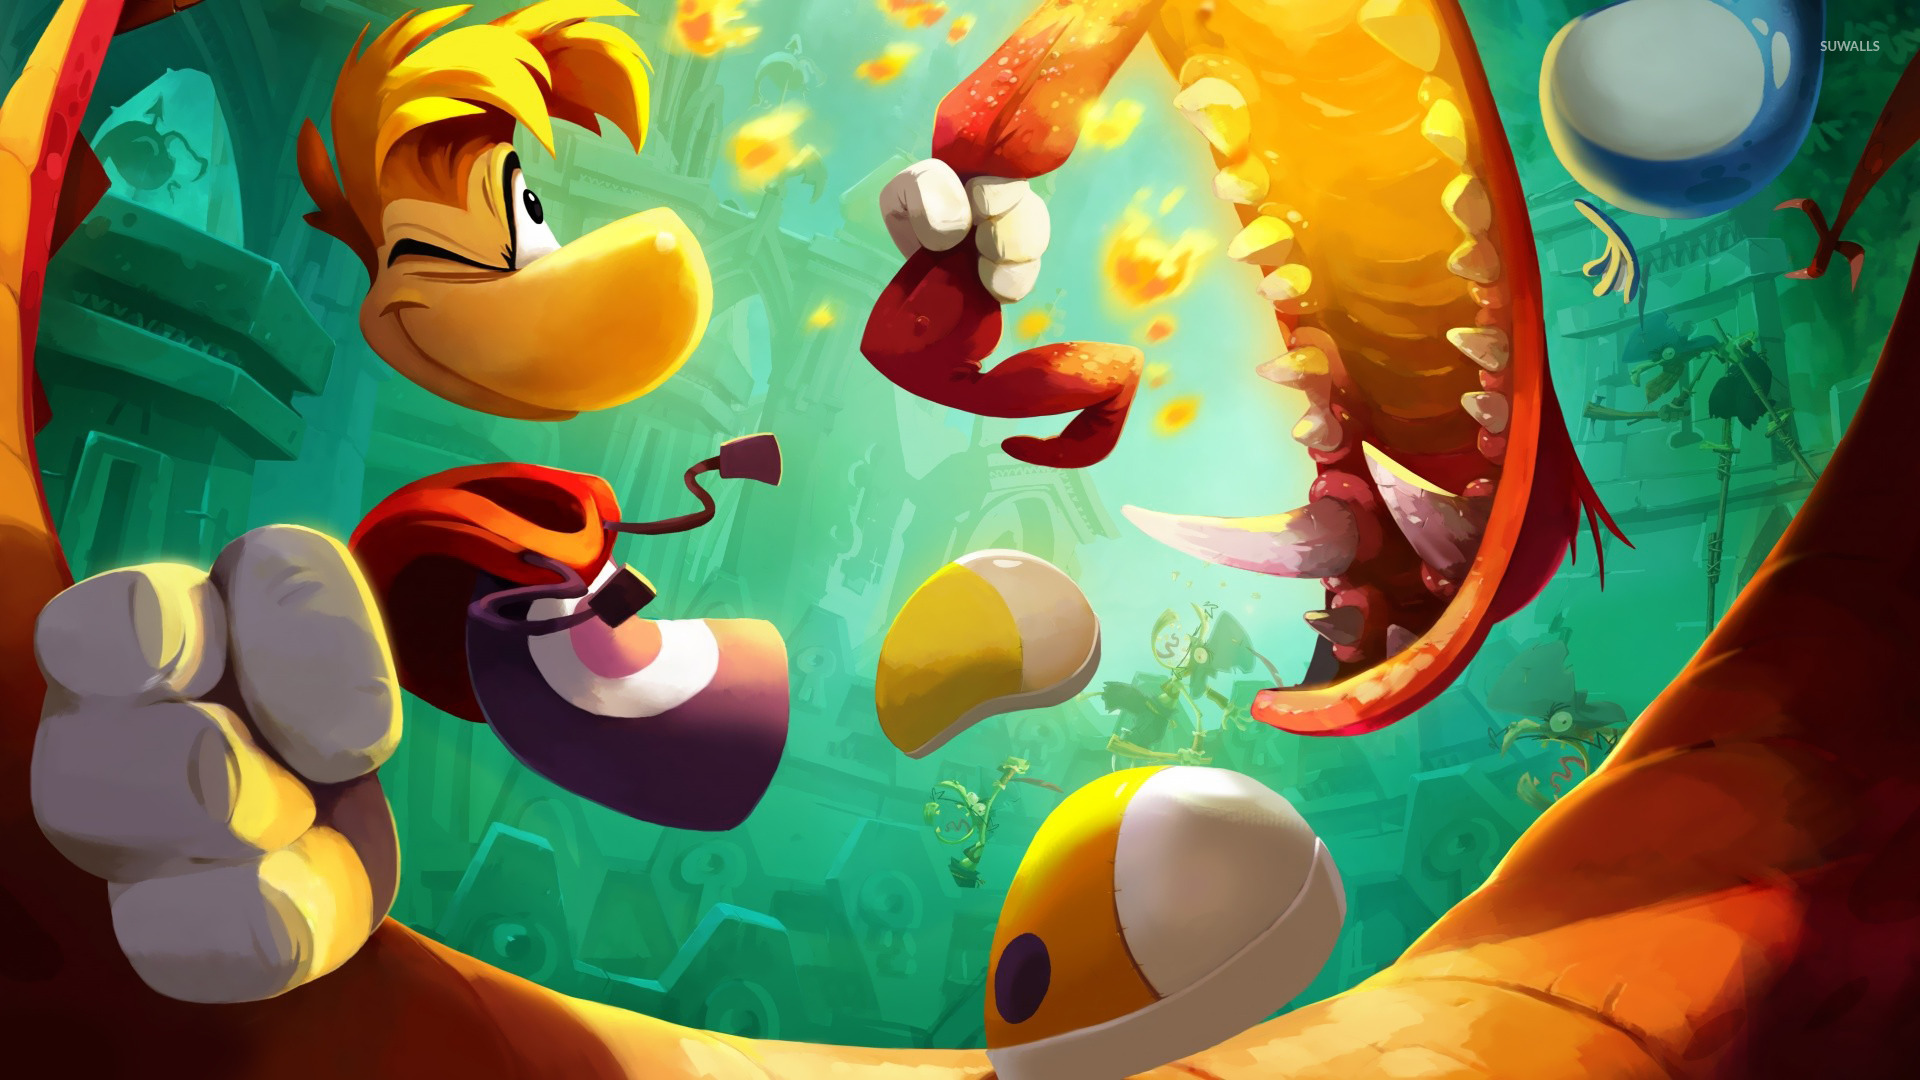 Rayman animated series is happening